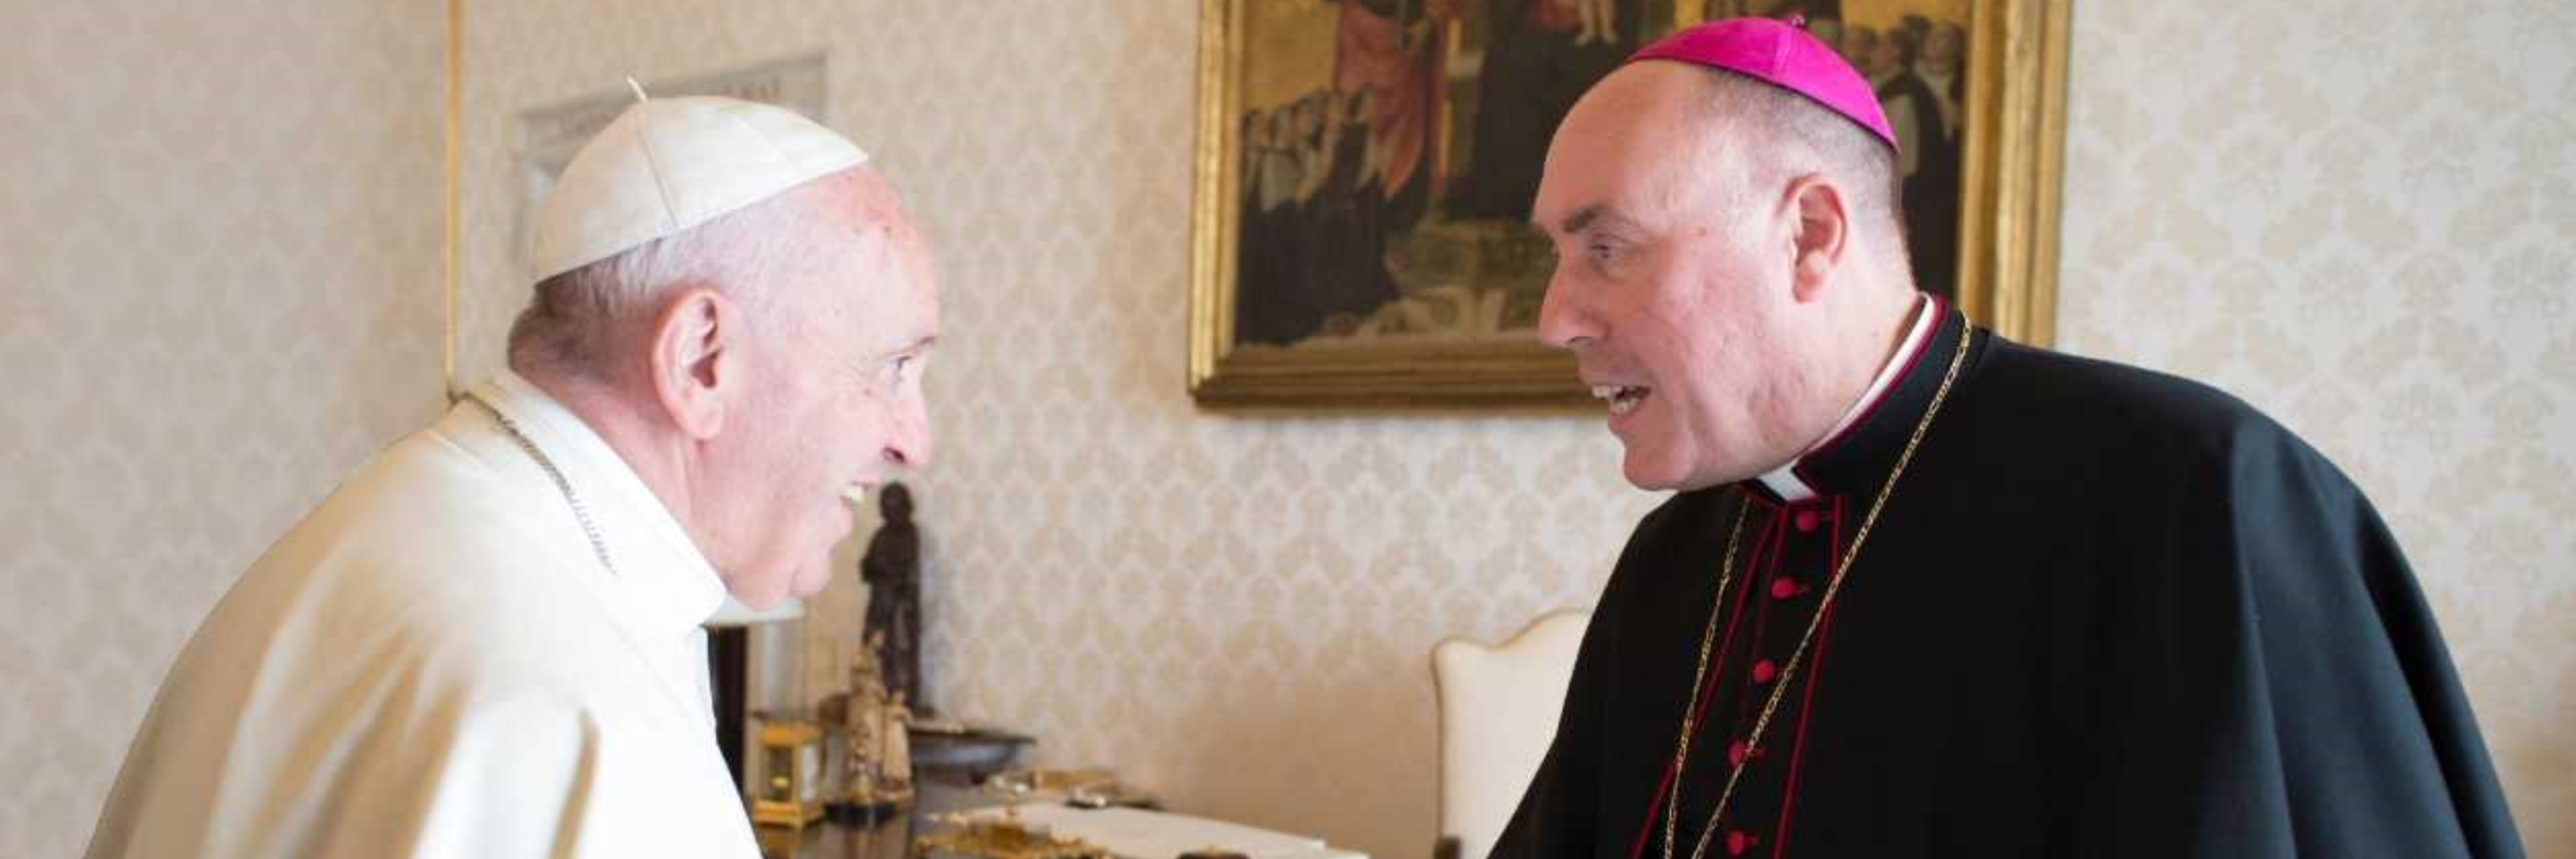 Bishop Brian meets Pope Francis